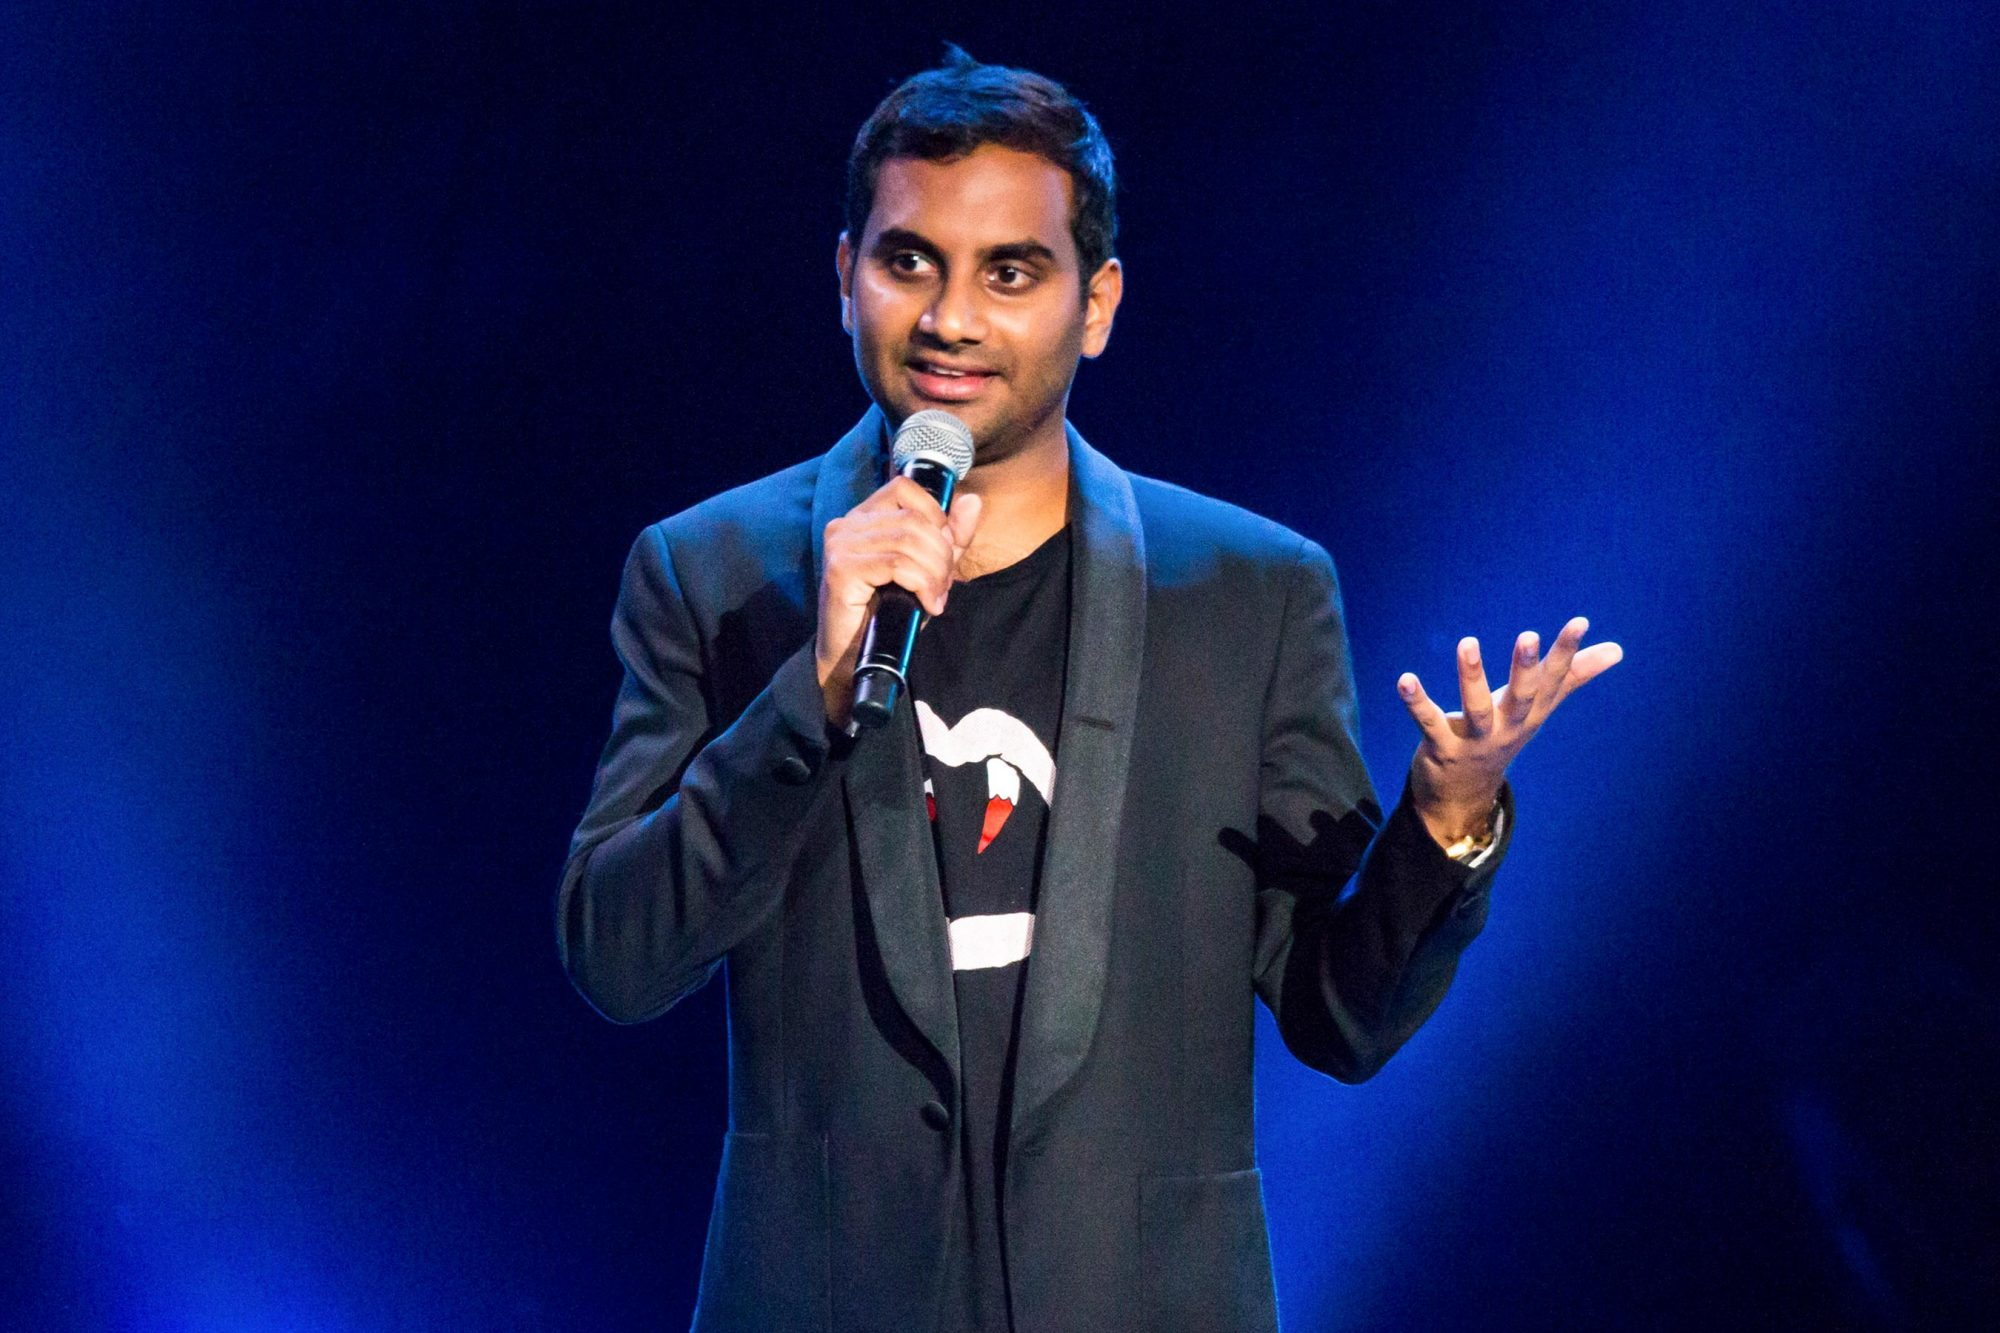 CLARKSTON, MI - AUGUST 30: Comedian Aziz Ansari performs during the Oddball Comedy And Curiosity Festival at DTE Energy Music Theater on August 30, 2015 in Clarkston, Michigan. (Photo by Scott Legato/Getty Images)